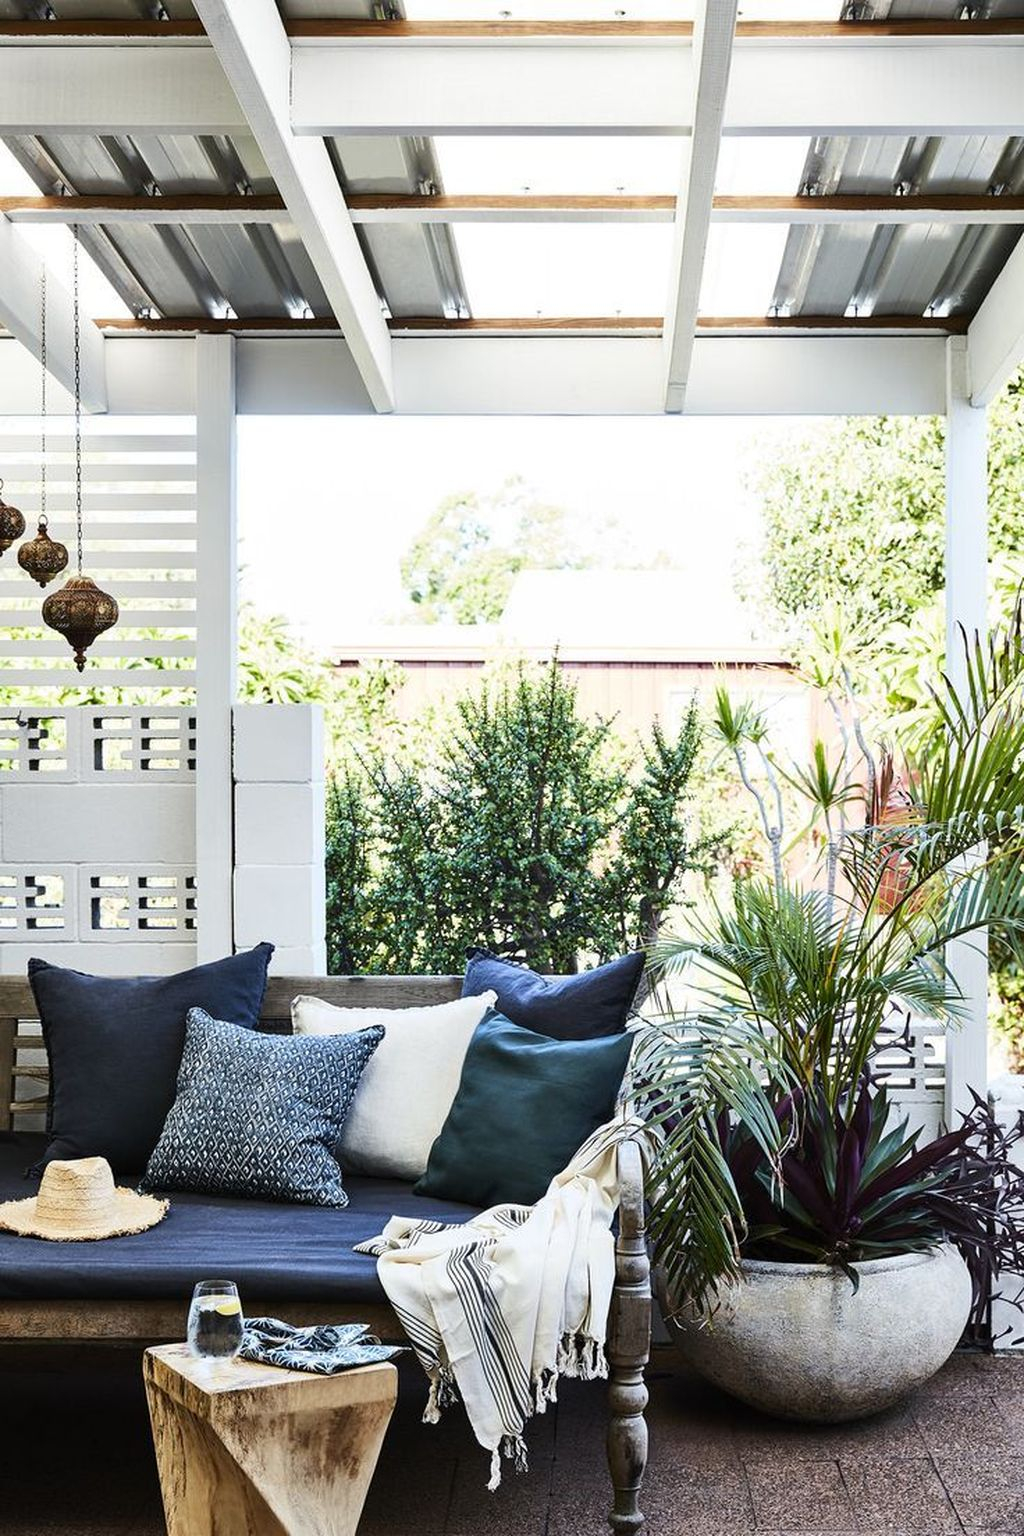 Inspiring Boho Outdoor Decorating Ideas For Backyard27